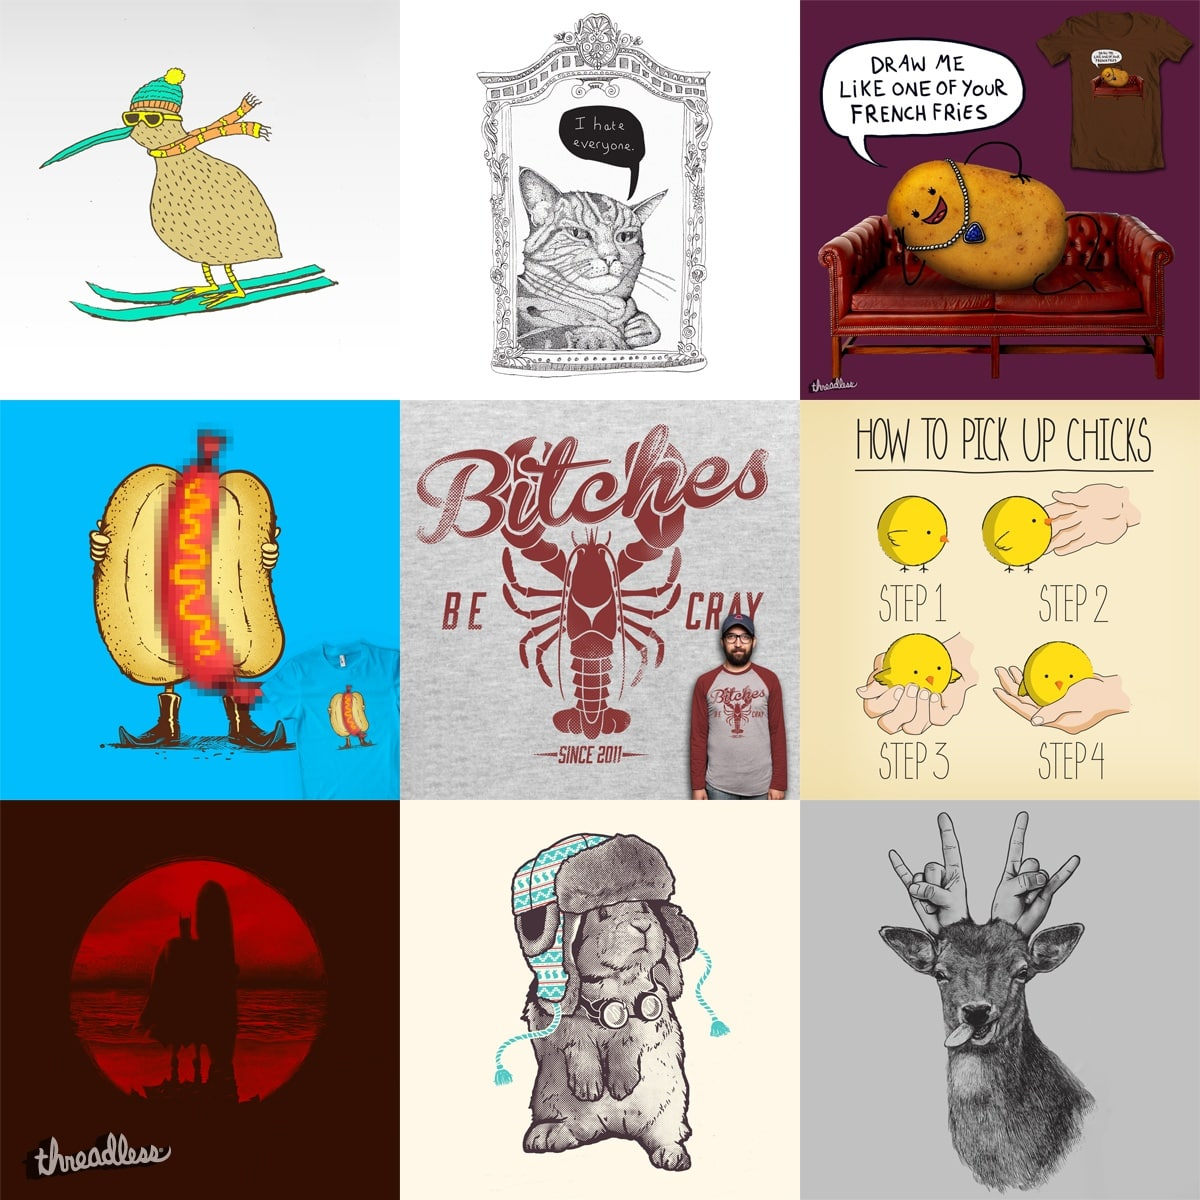 Staff Collection #2 by StaffCollections on Threadless